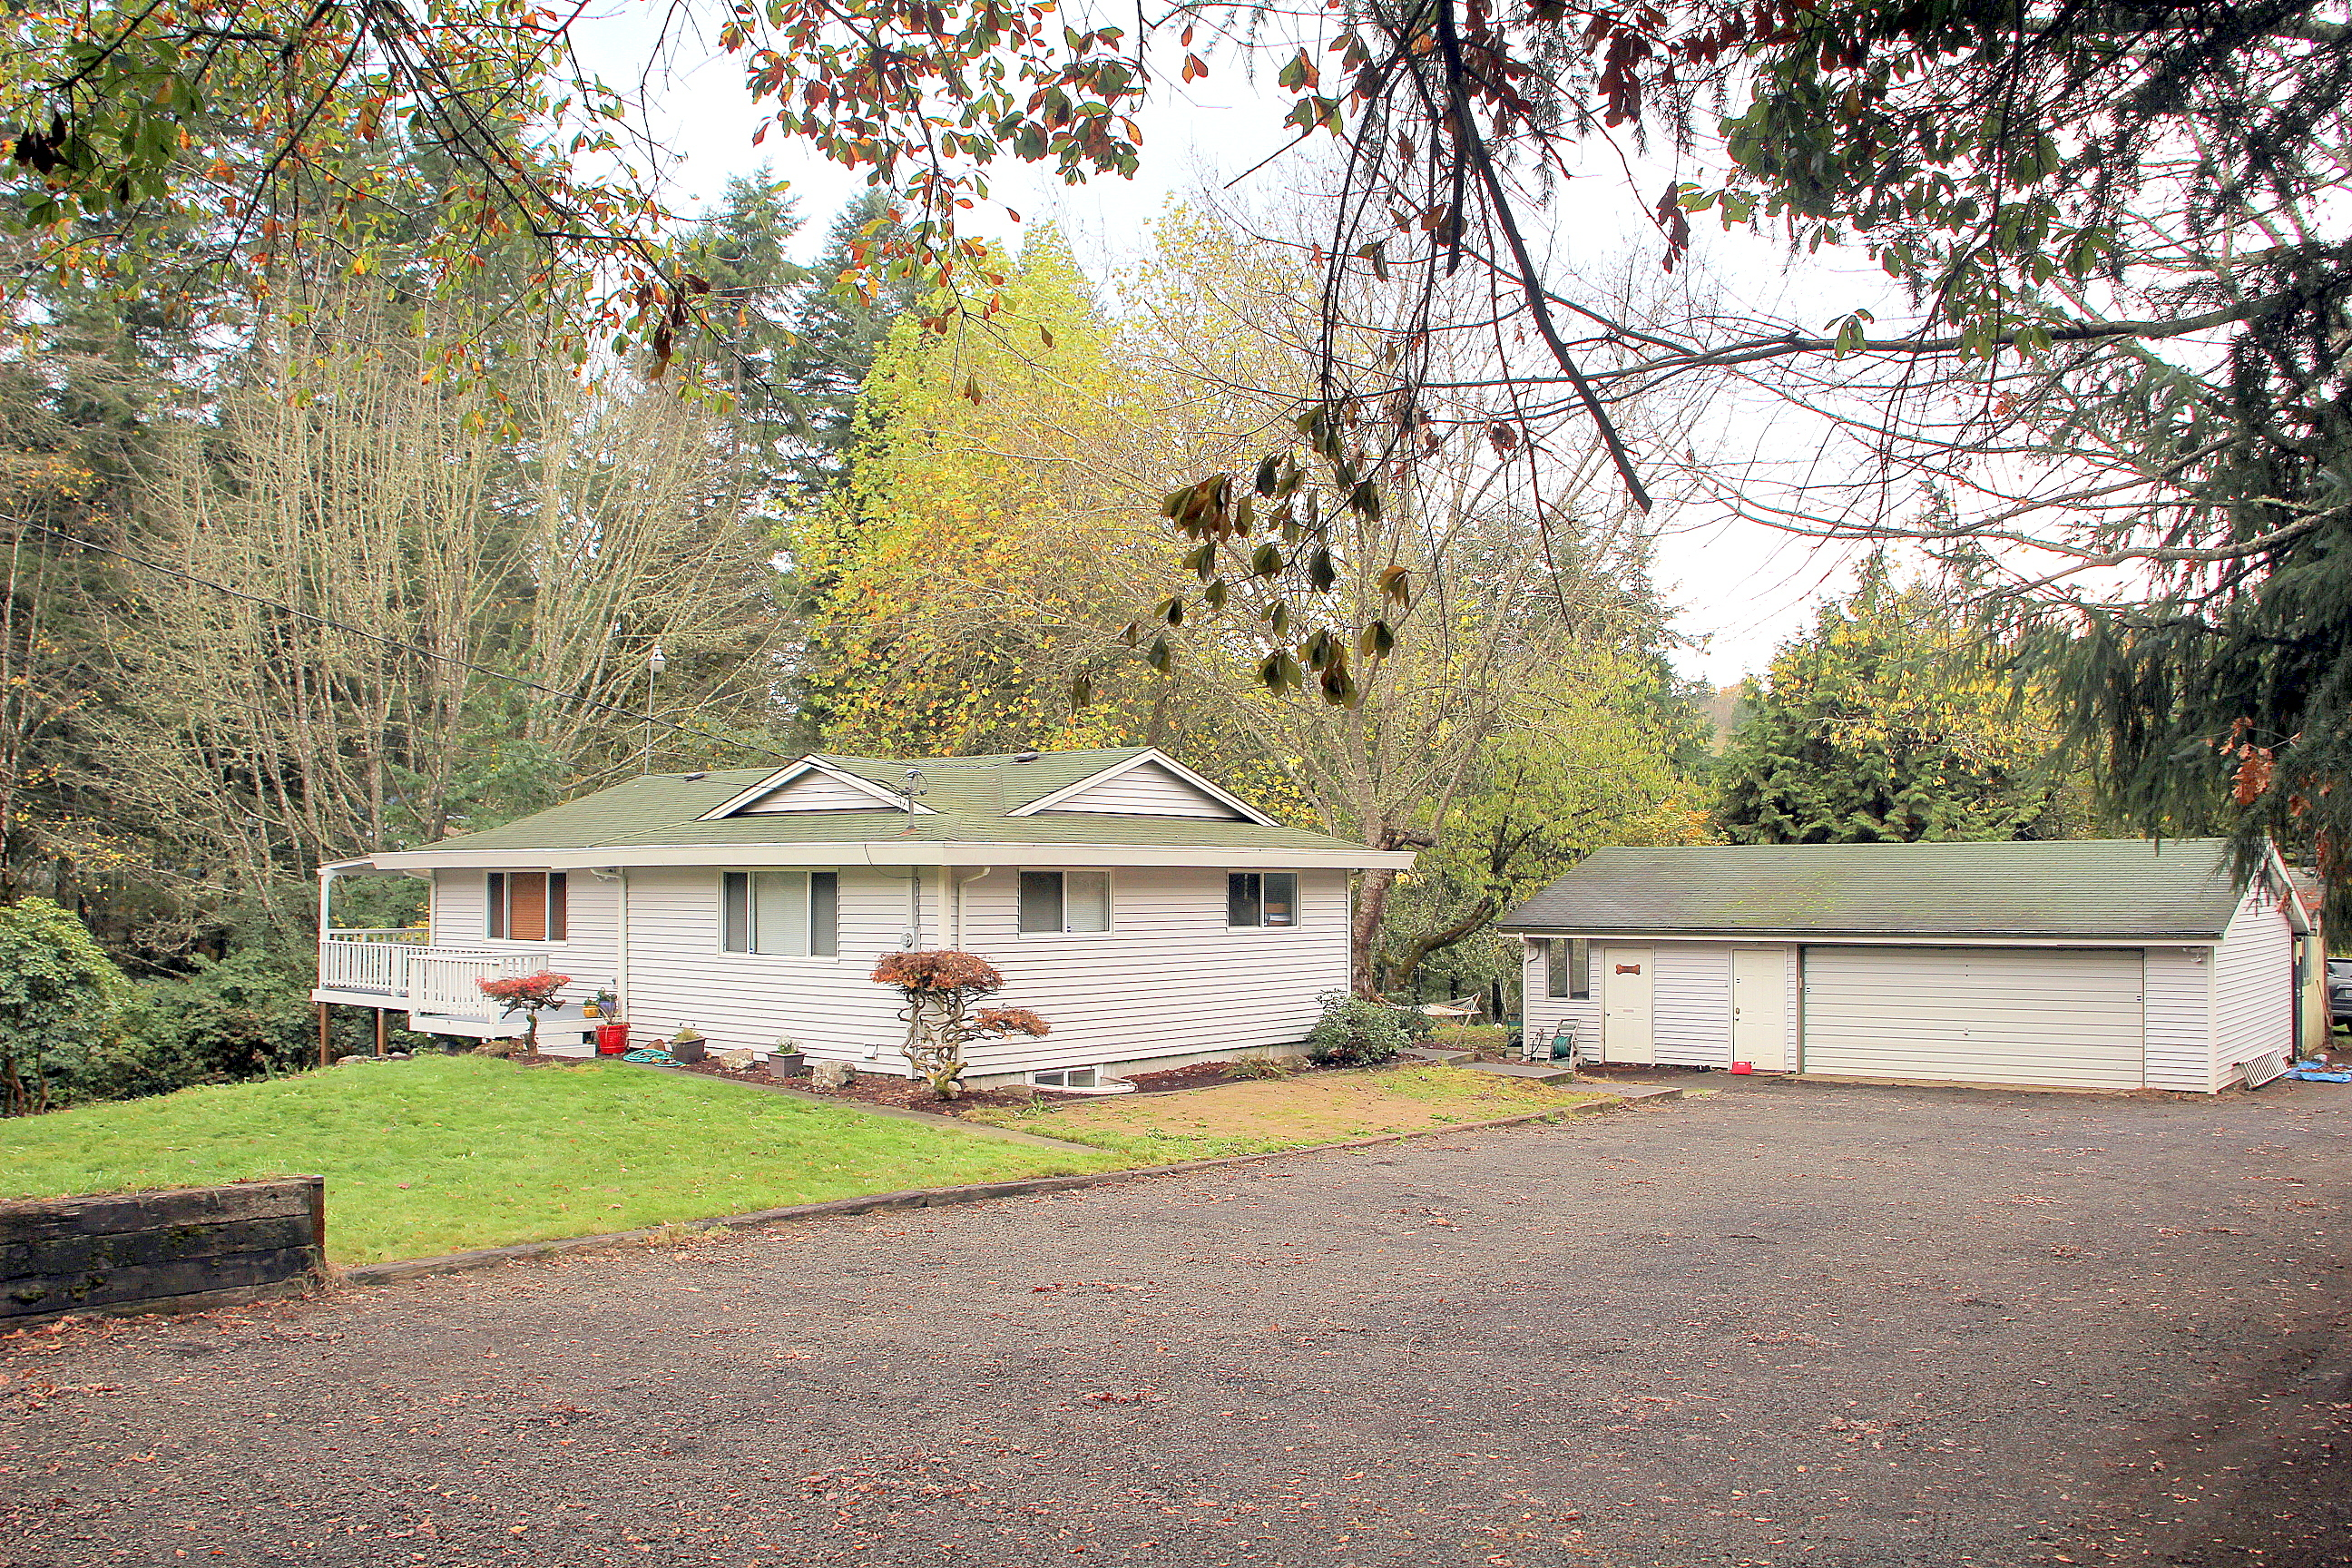 Acreage Horse Propety  home for sale in port orchard